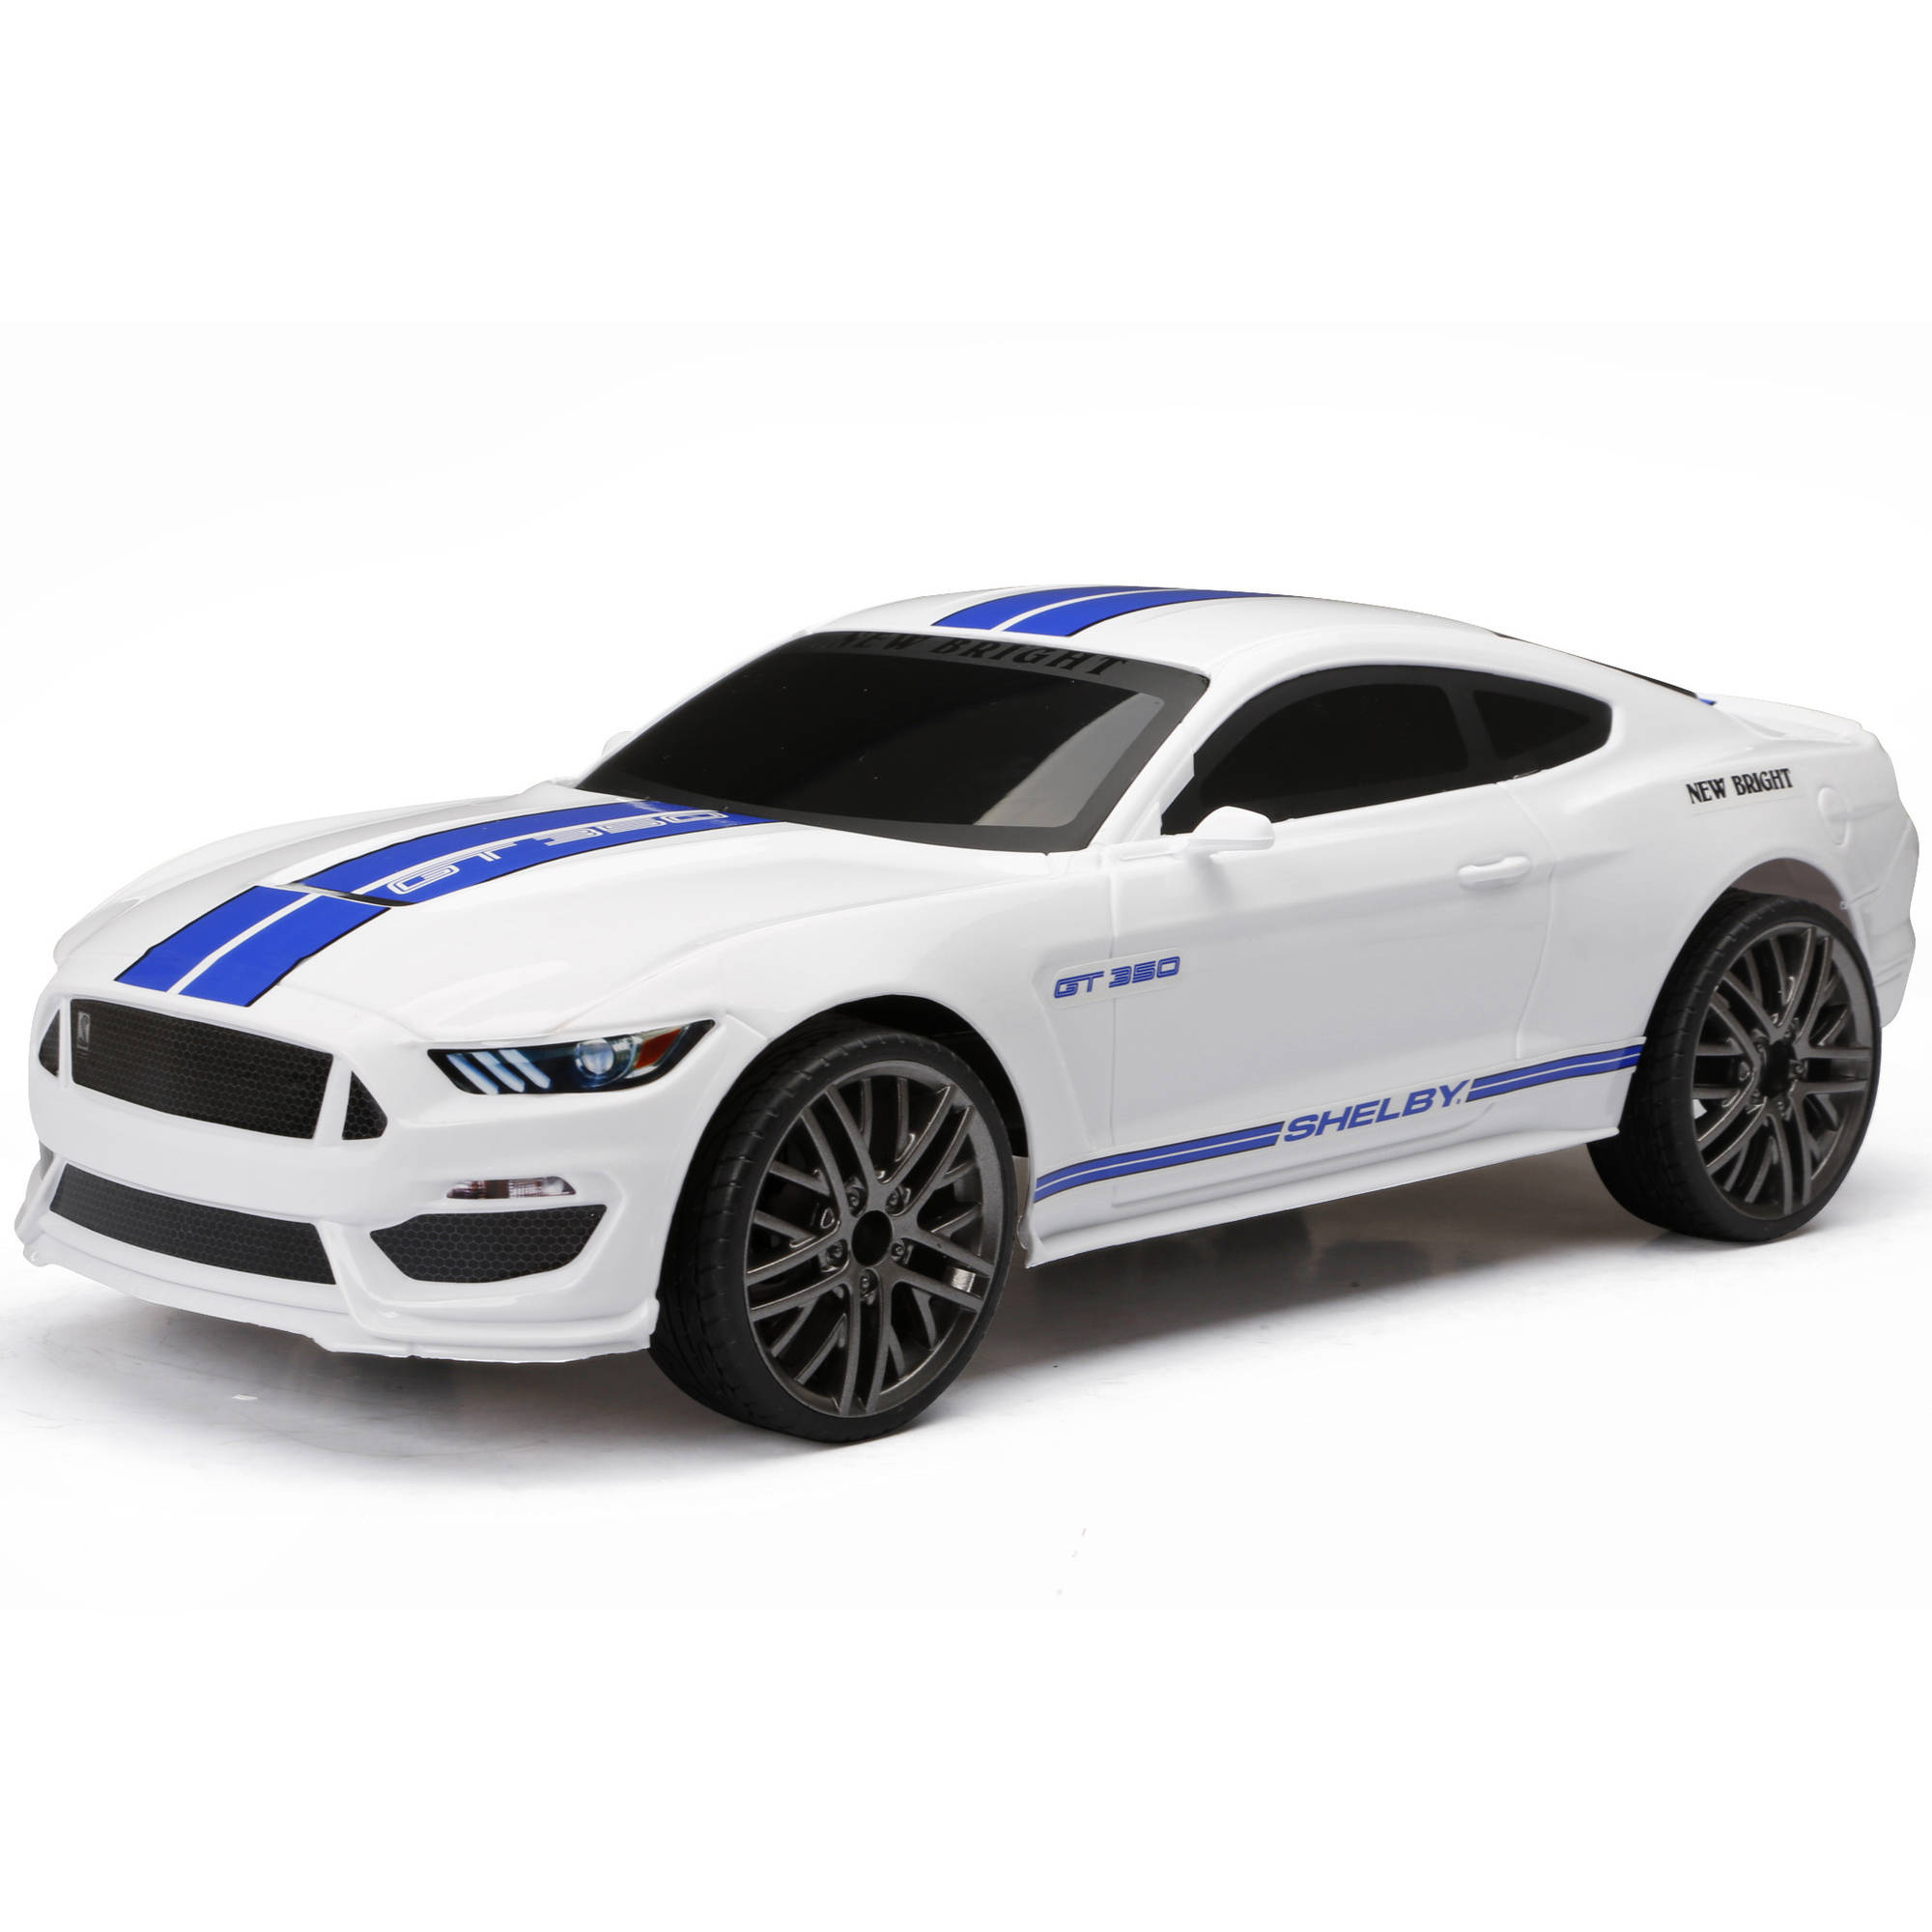 New Bright 1 12 Full Function Mustang R C Car